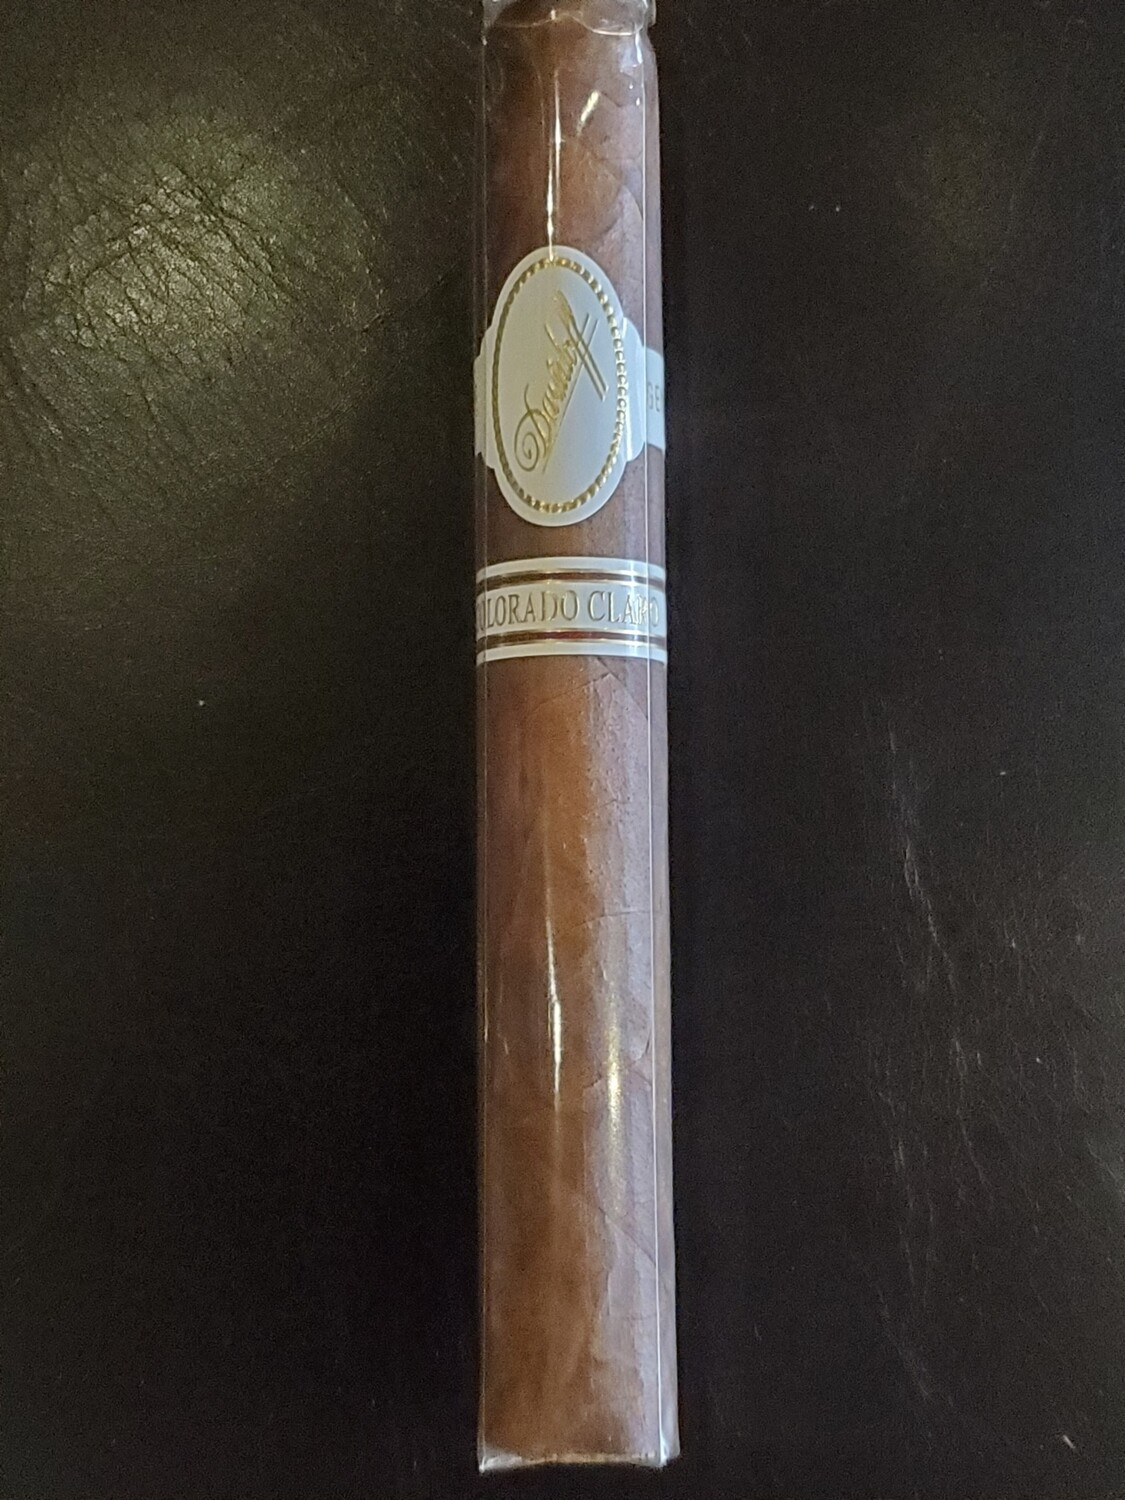 Davidoff Colorado Claro No. 3